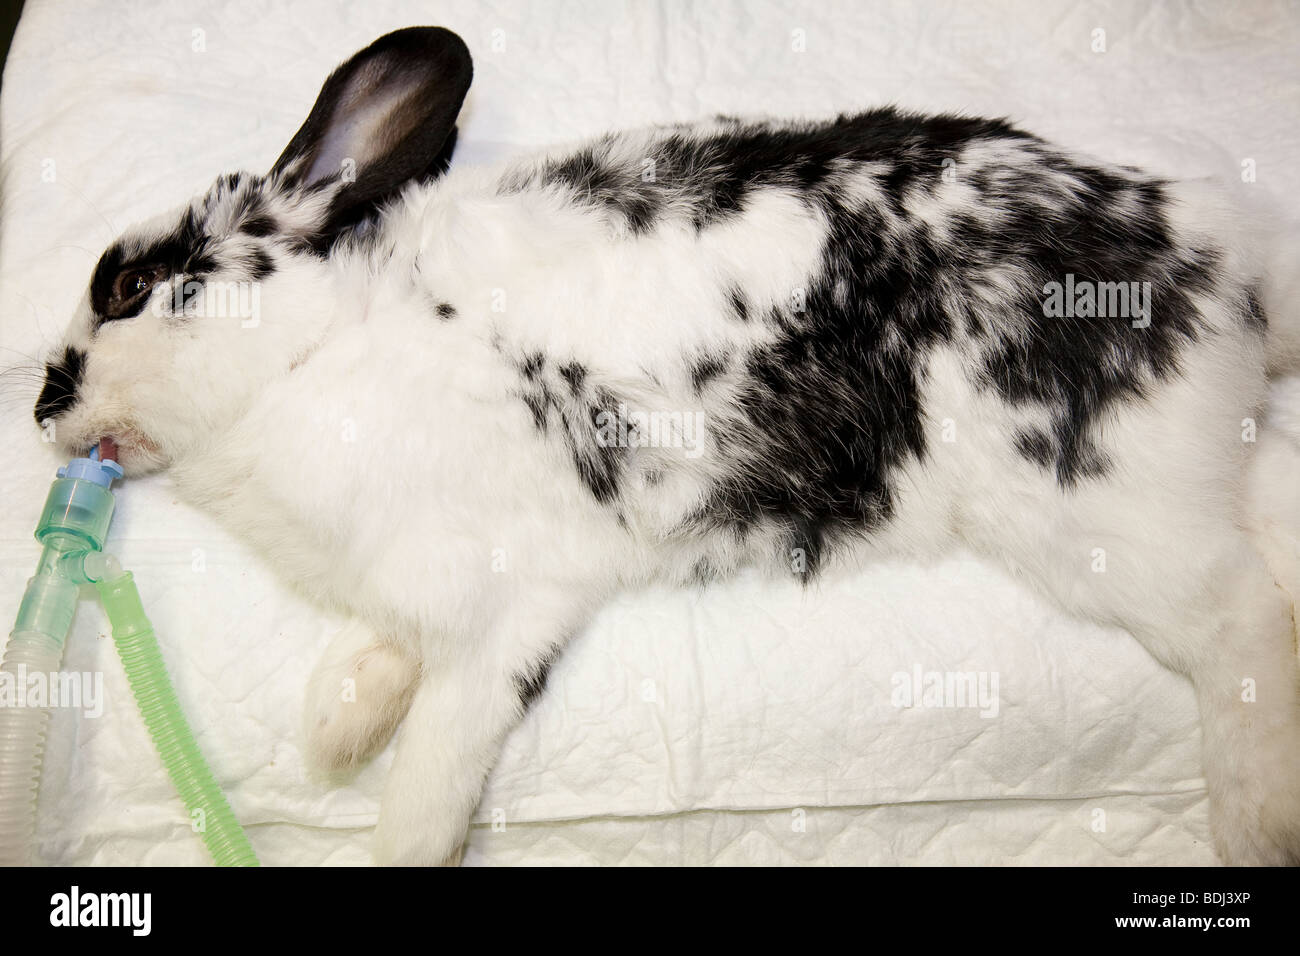 Pet Rabbit Under General Anaesthetic - Stock Image